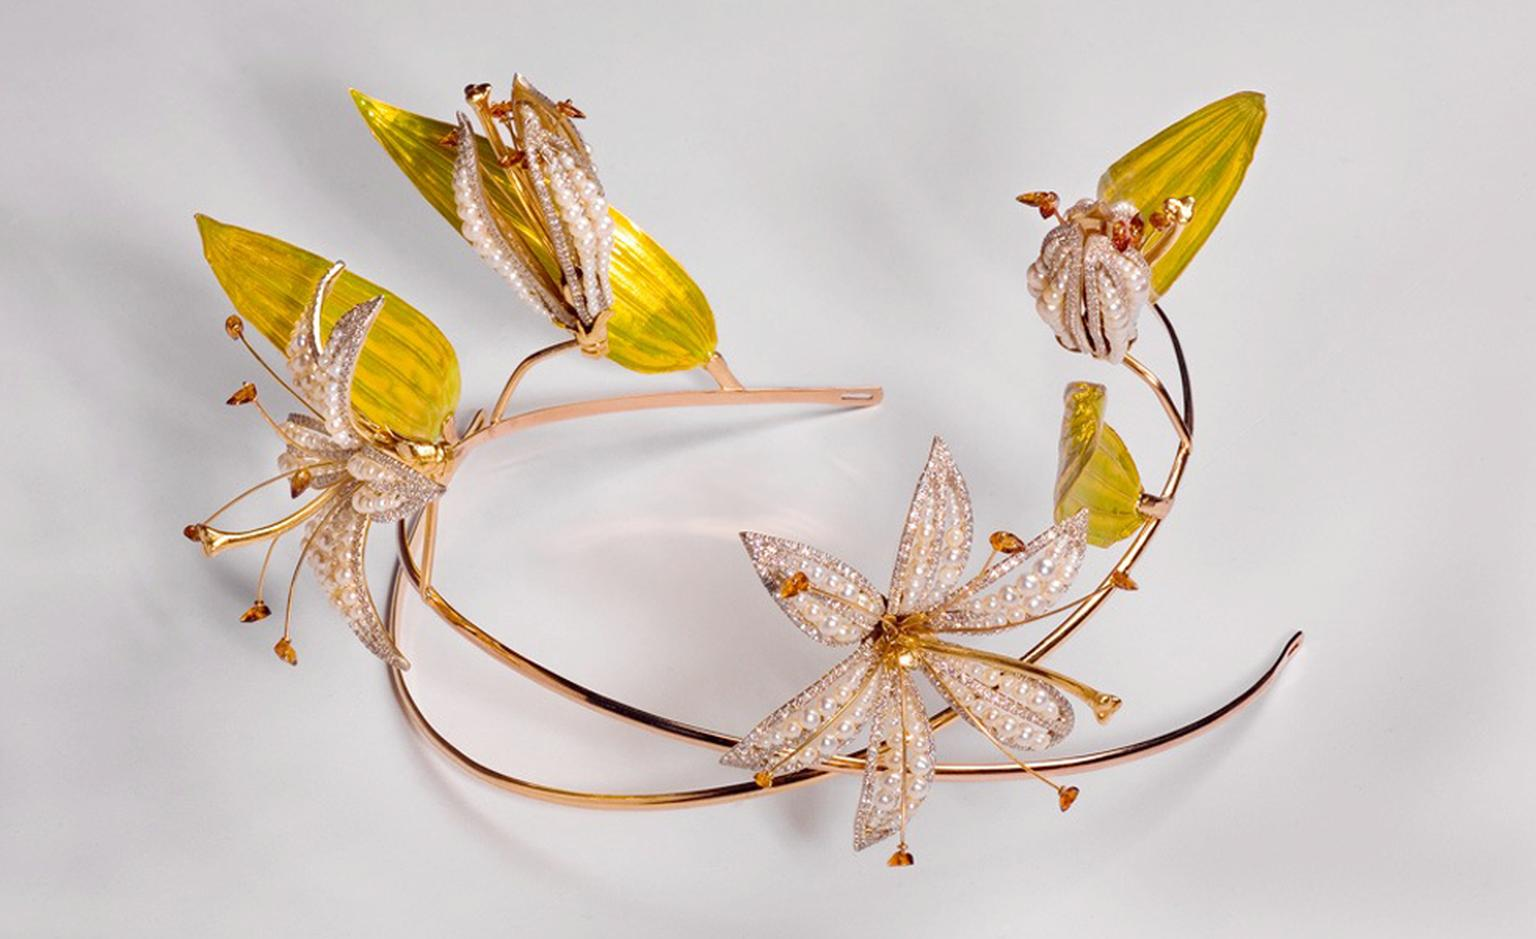 ARK, lilies, 2007, madeira  citrine, 18 carat gold and enamelled 24 carat gold leaves. POA.